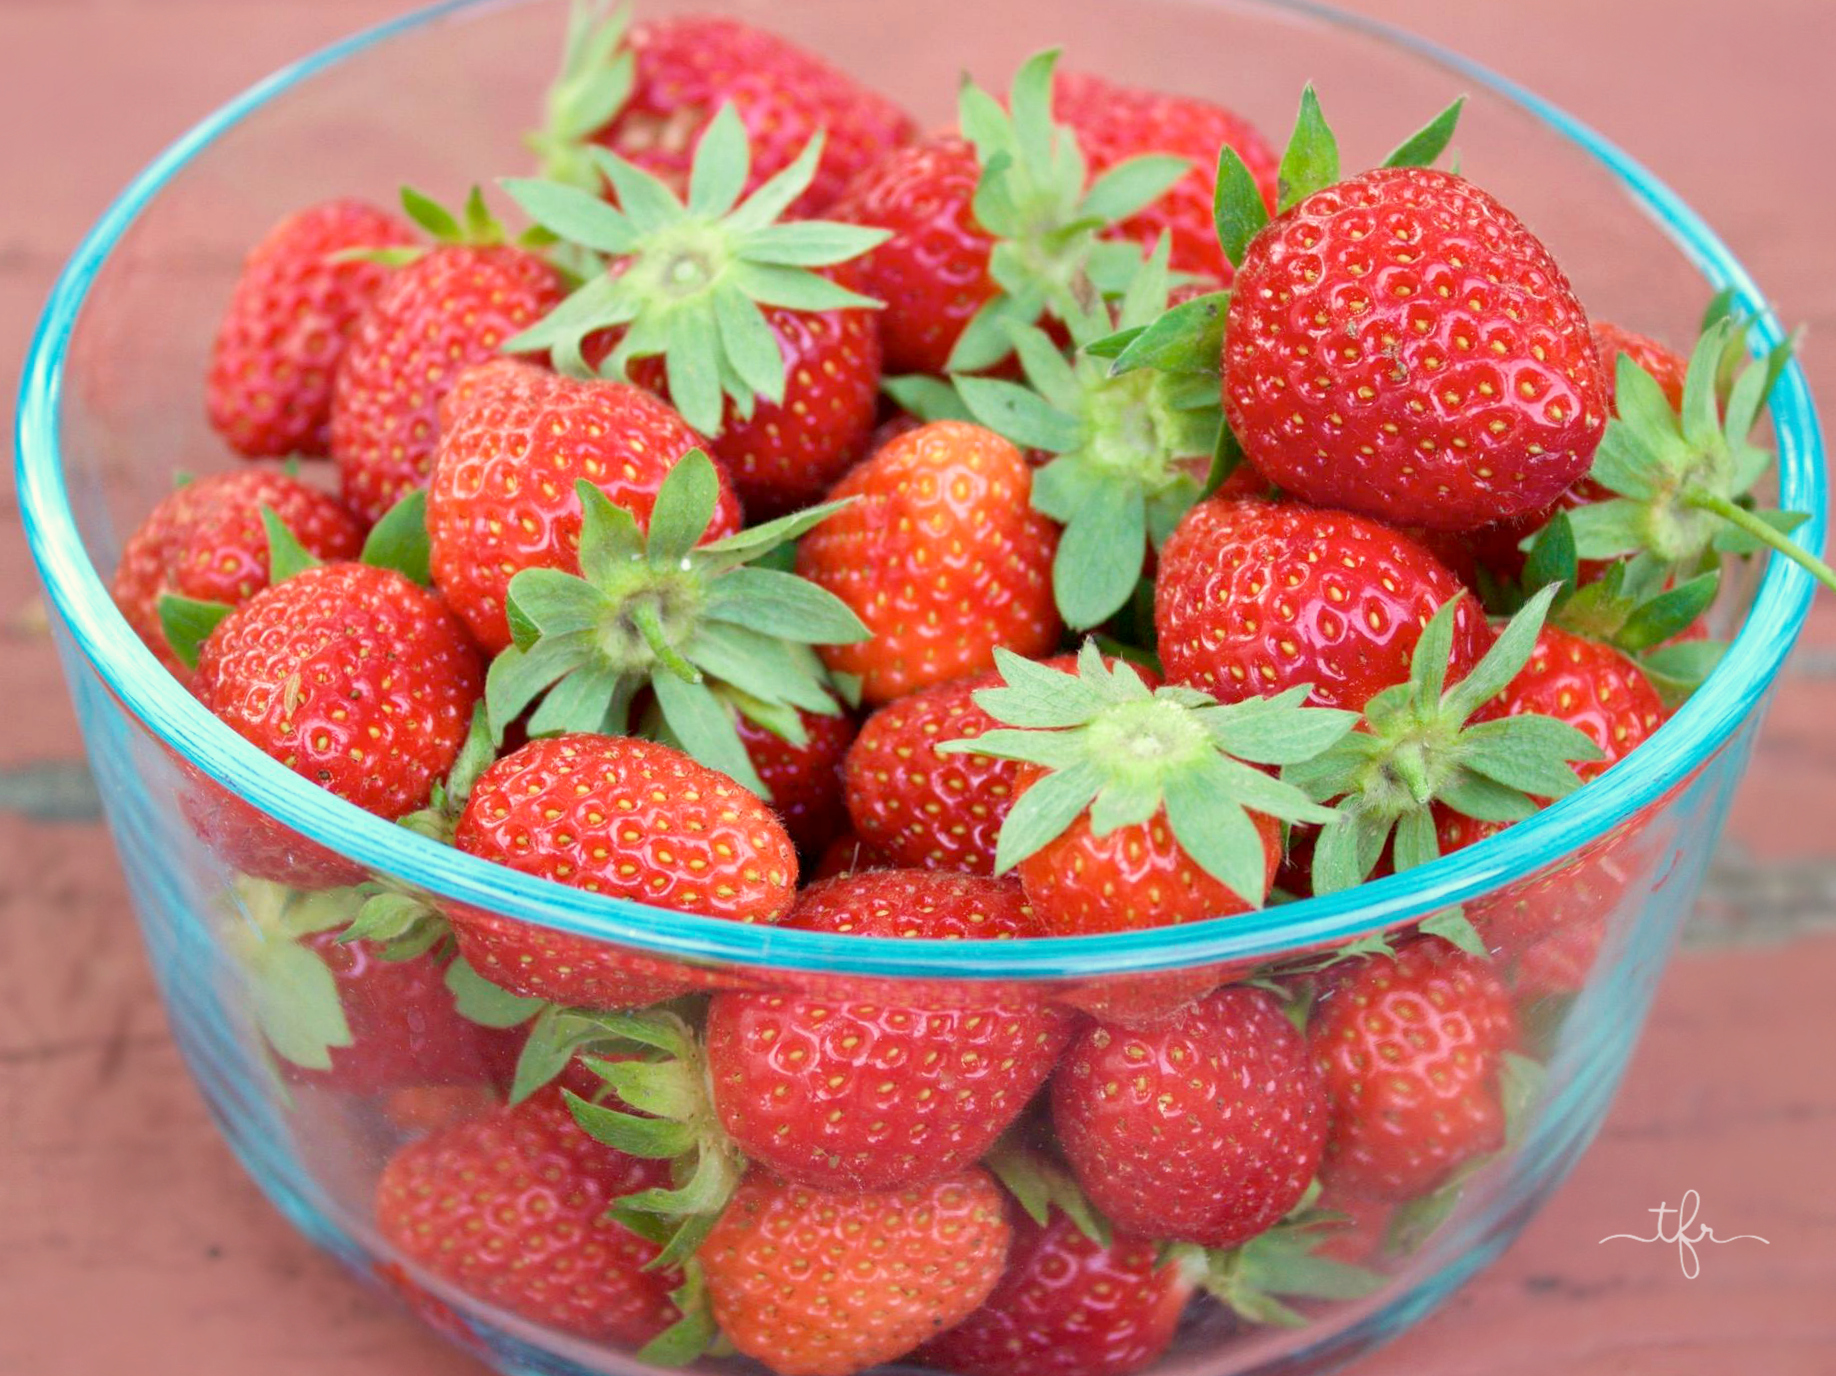 Interested in growing strawberries at home. How do you like this business idea 6